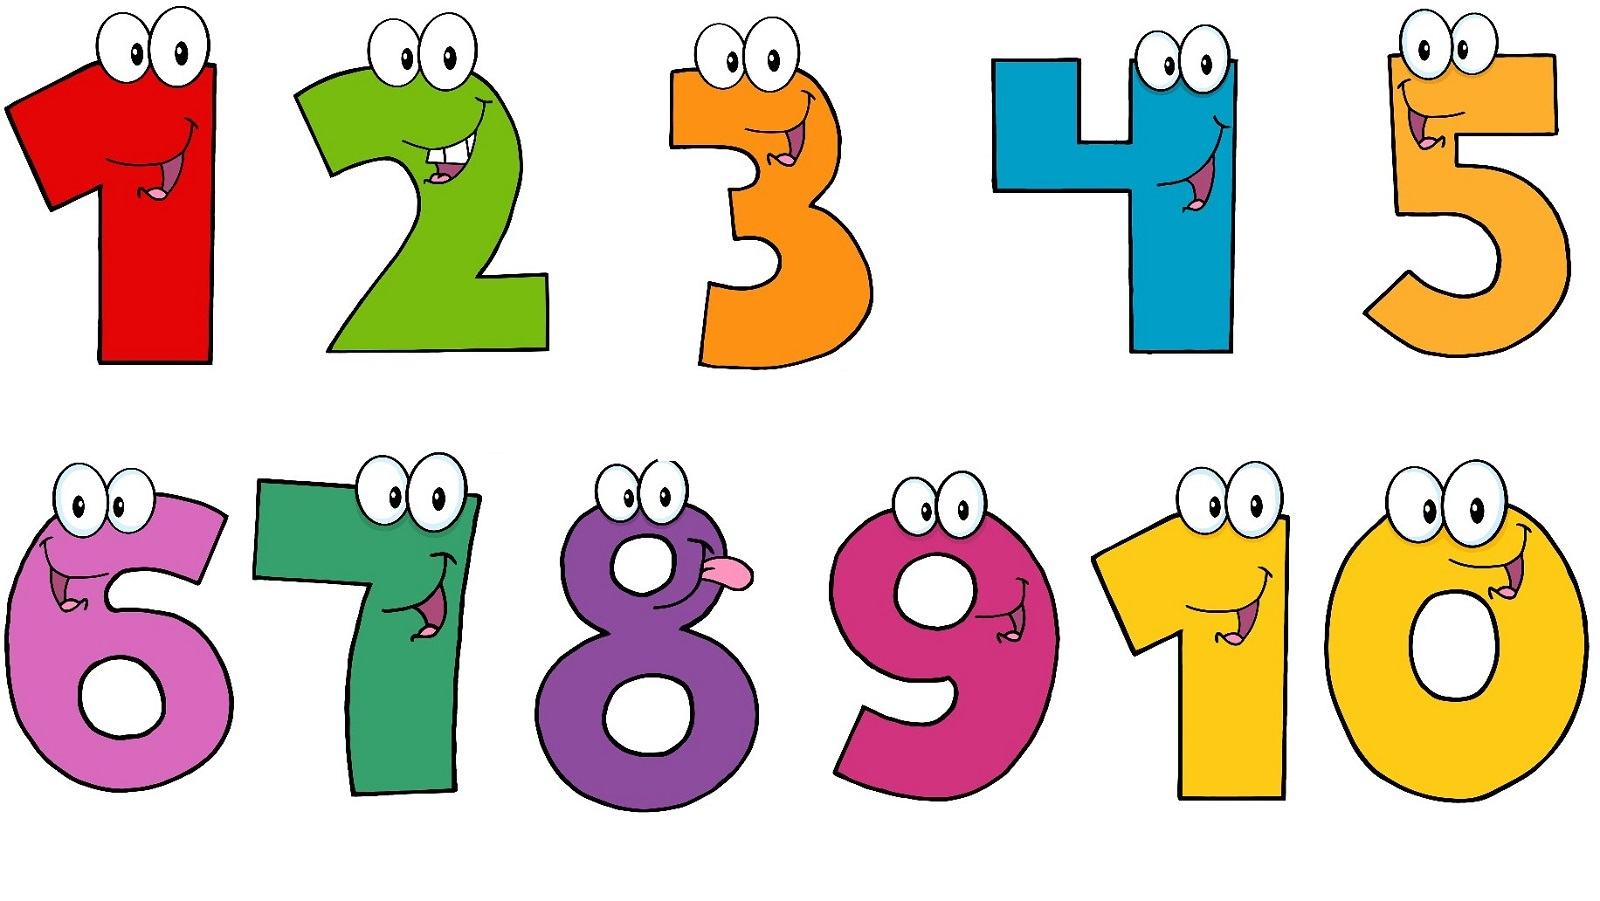 Clipart Of Numbers 1 10 Hd Letters-Clipart Of Numbers 1 10 Hd Letters-0